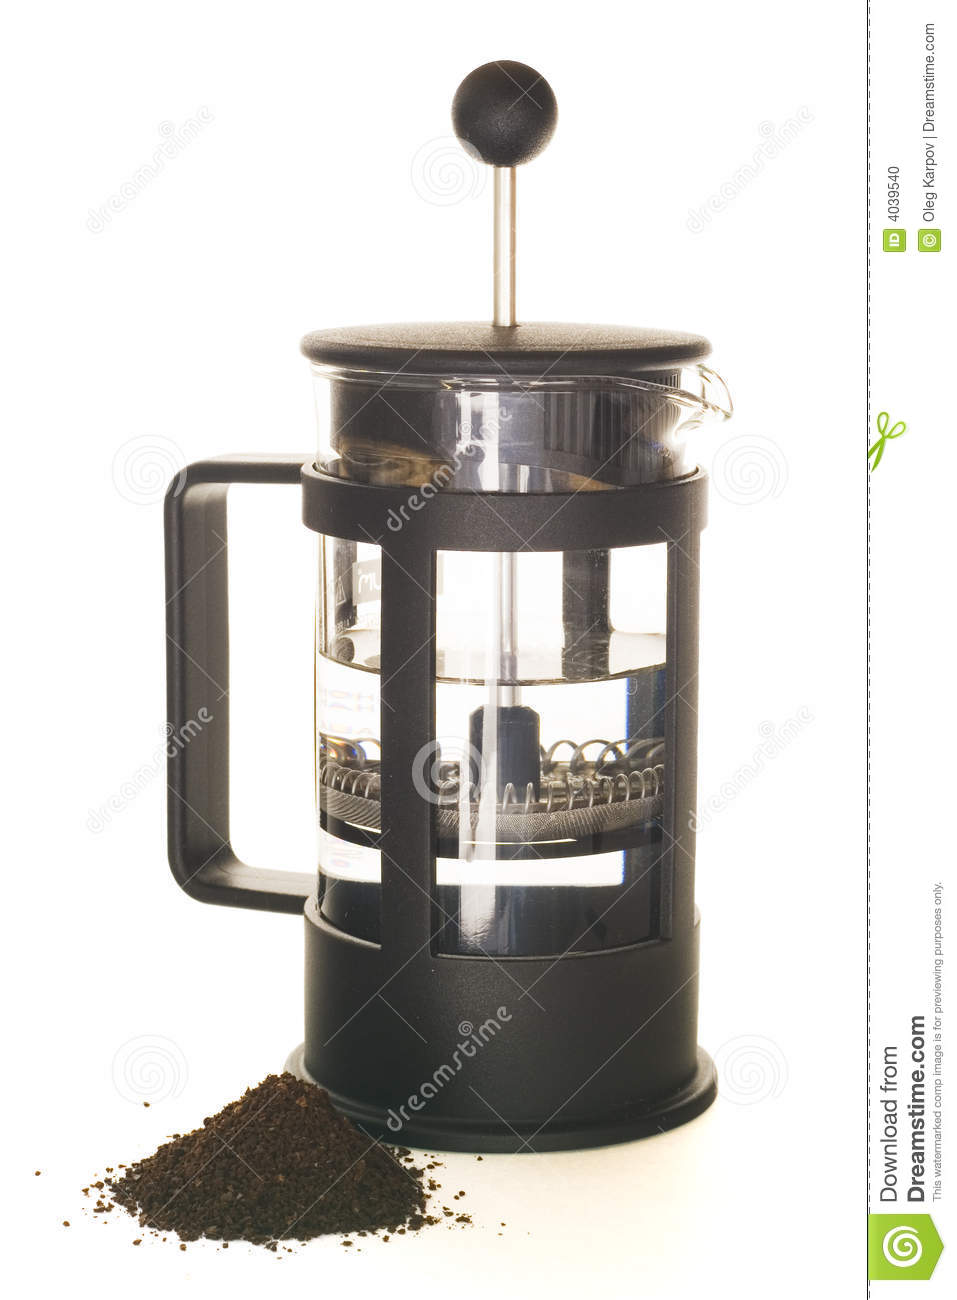 how to make french press coffee with grounds